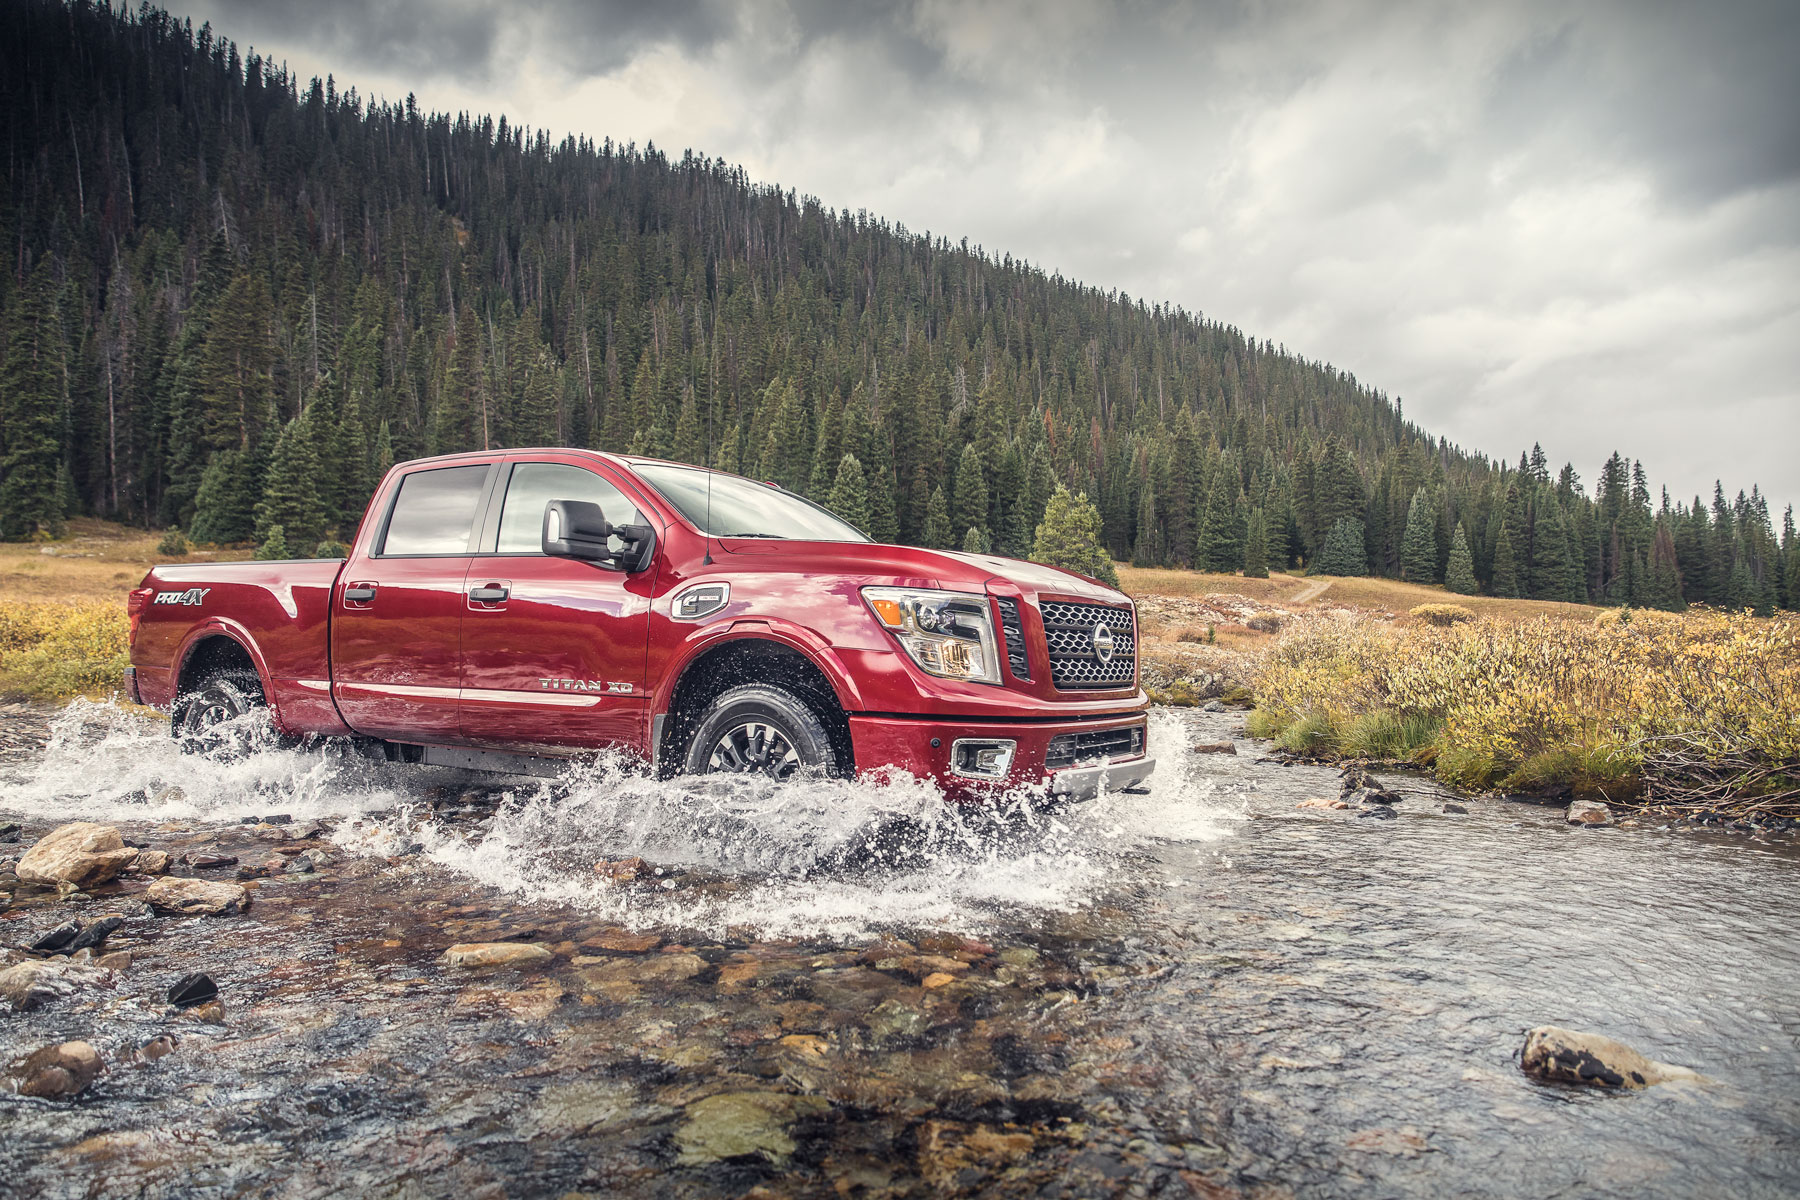 Automotive Photography - 2018 Nissan Titan XD crossing river